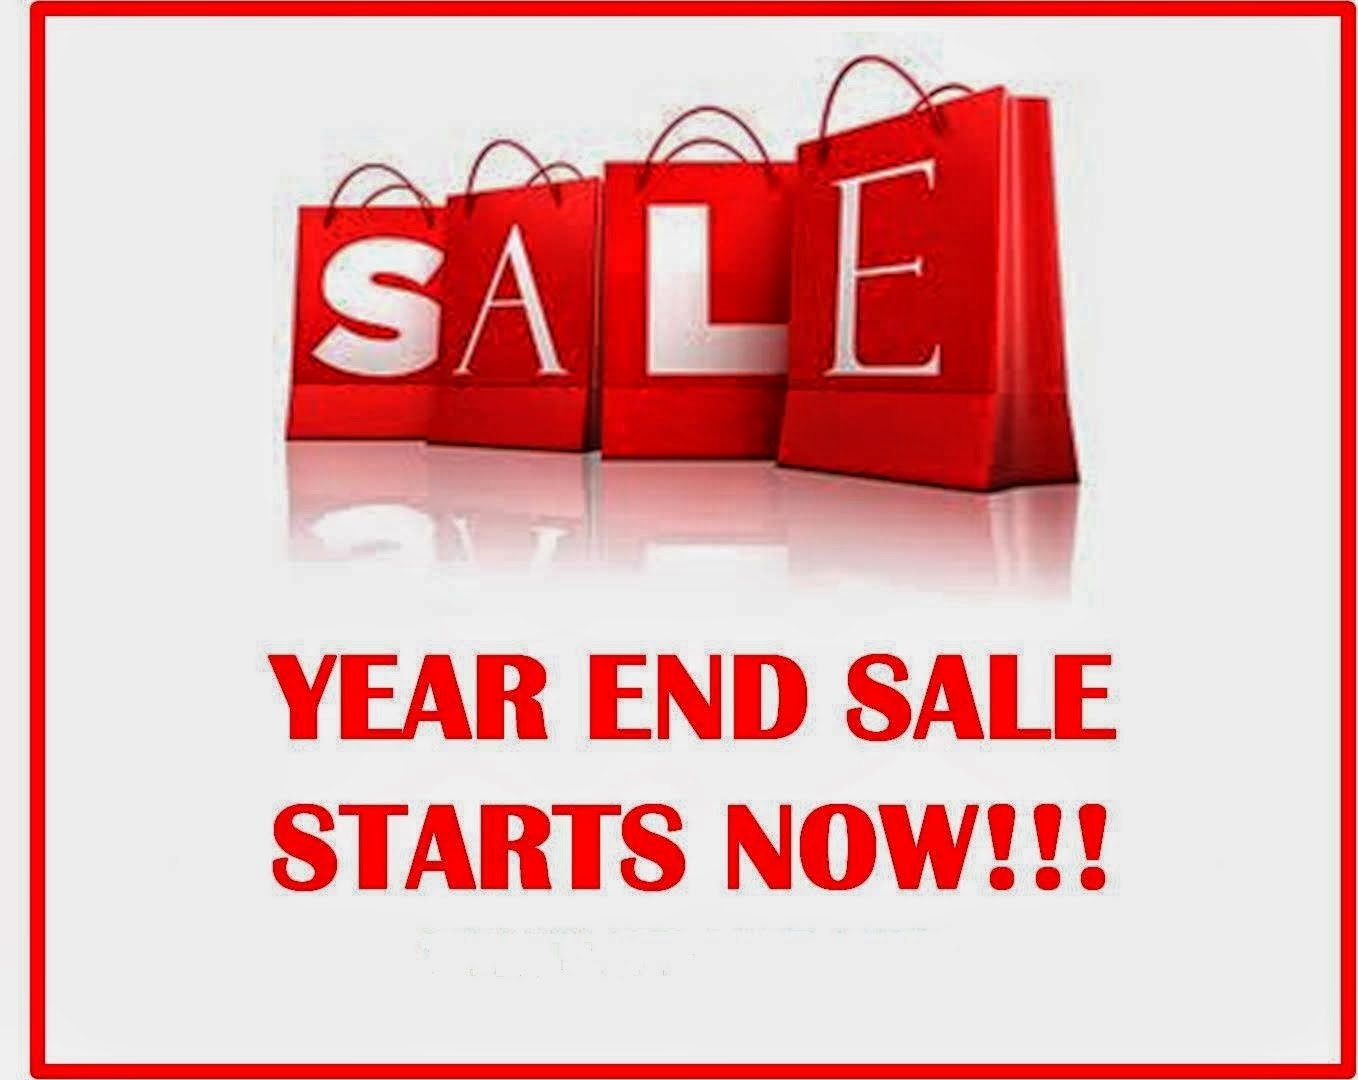 YEAR END SALE NOW